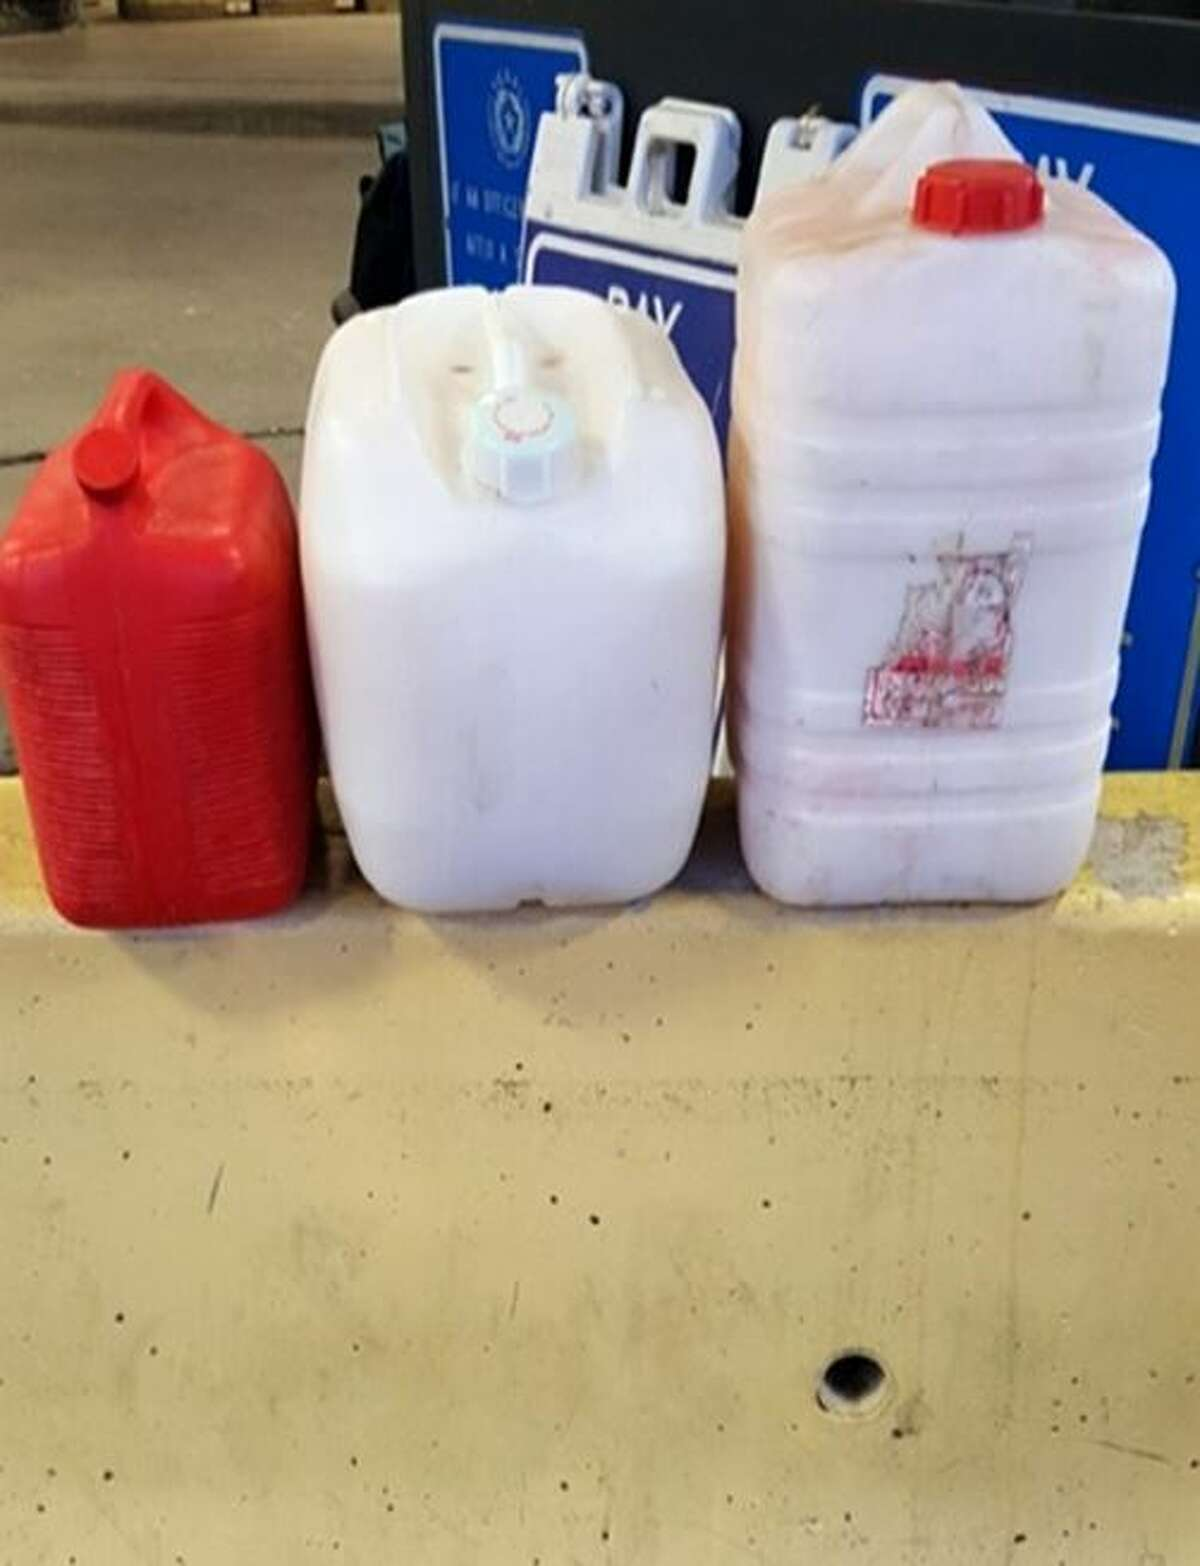 Three fuel containers containing 45 gallons of pulque were seized by Texas Alcoholic Beverage Commission tax compliance officers at the Juarez-Lincoln International Bridge on July 25.